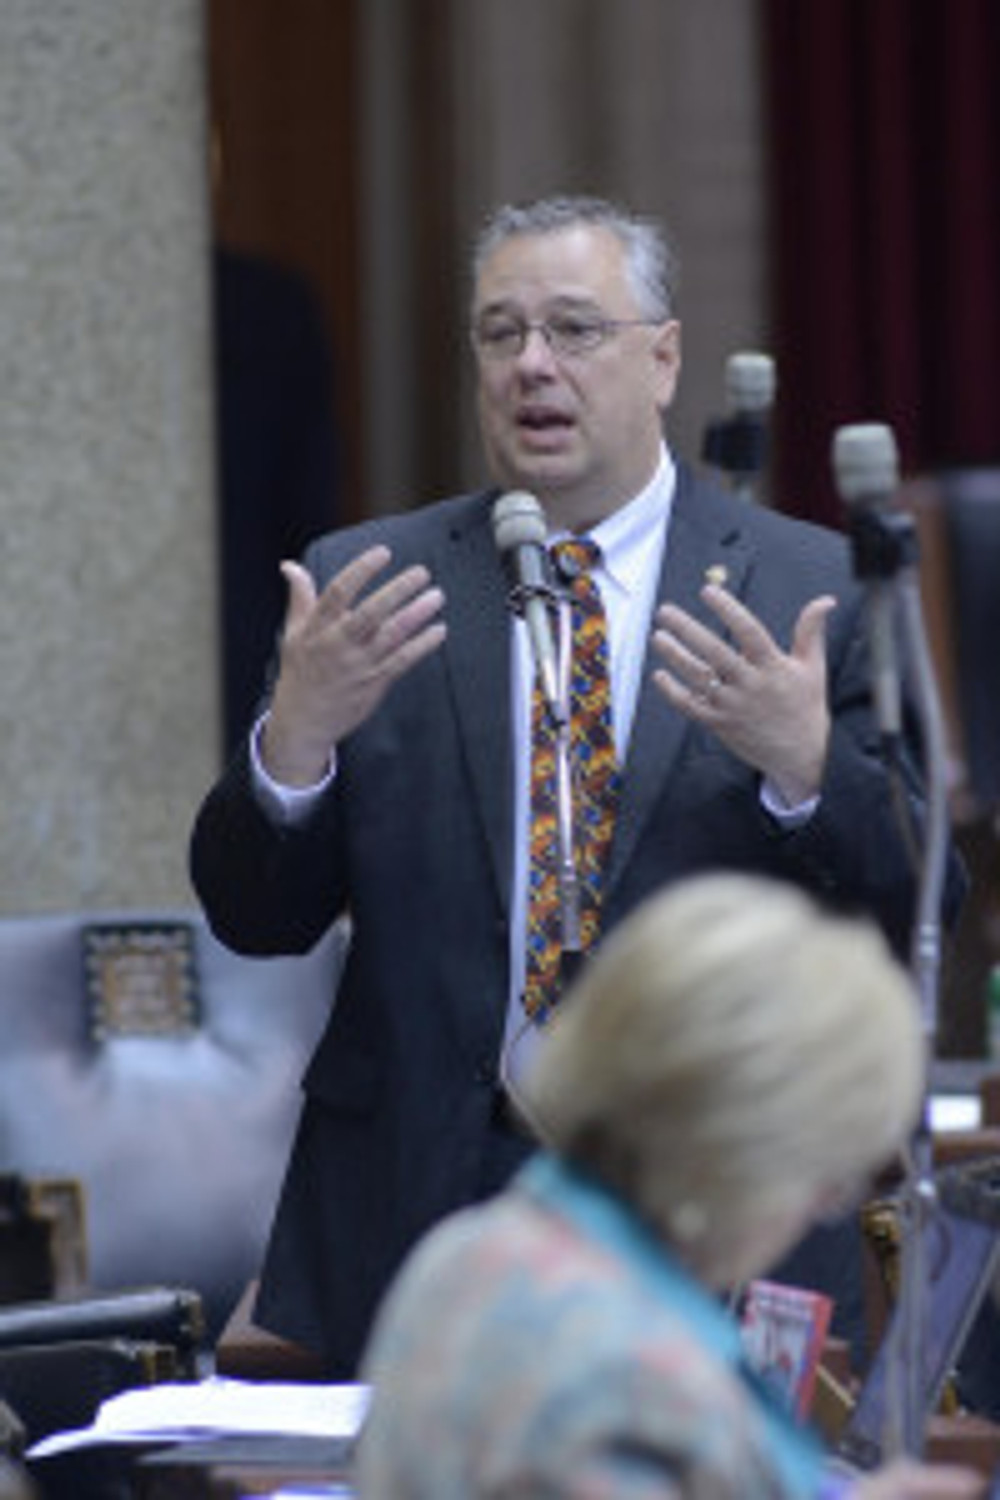 Rep. T.J. Berry (Photo courtesy of Tim Bommel, Mo. House of Reps.)